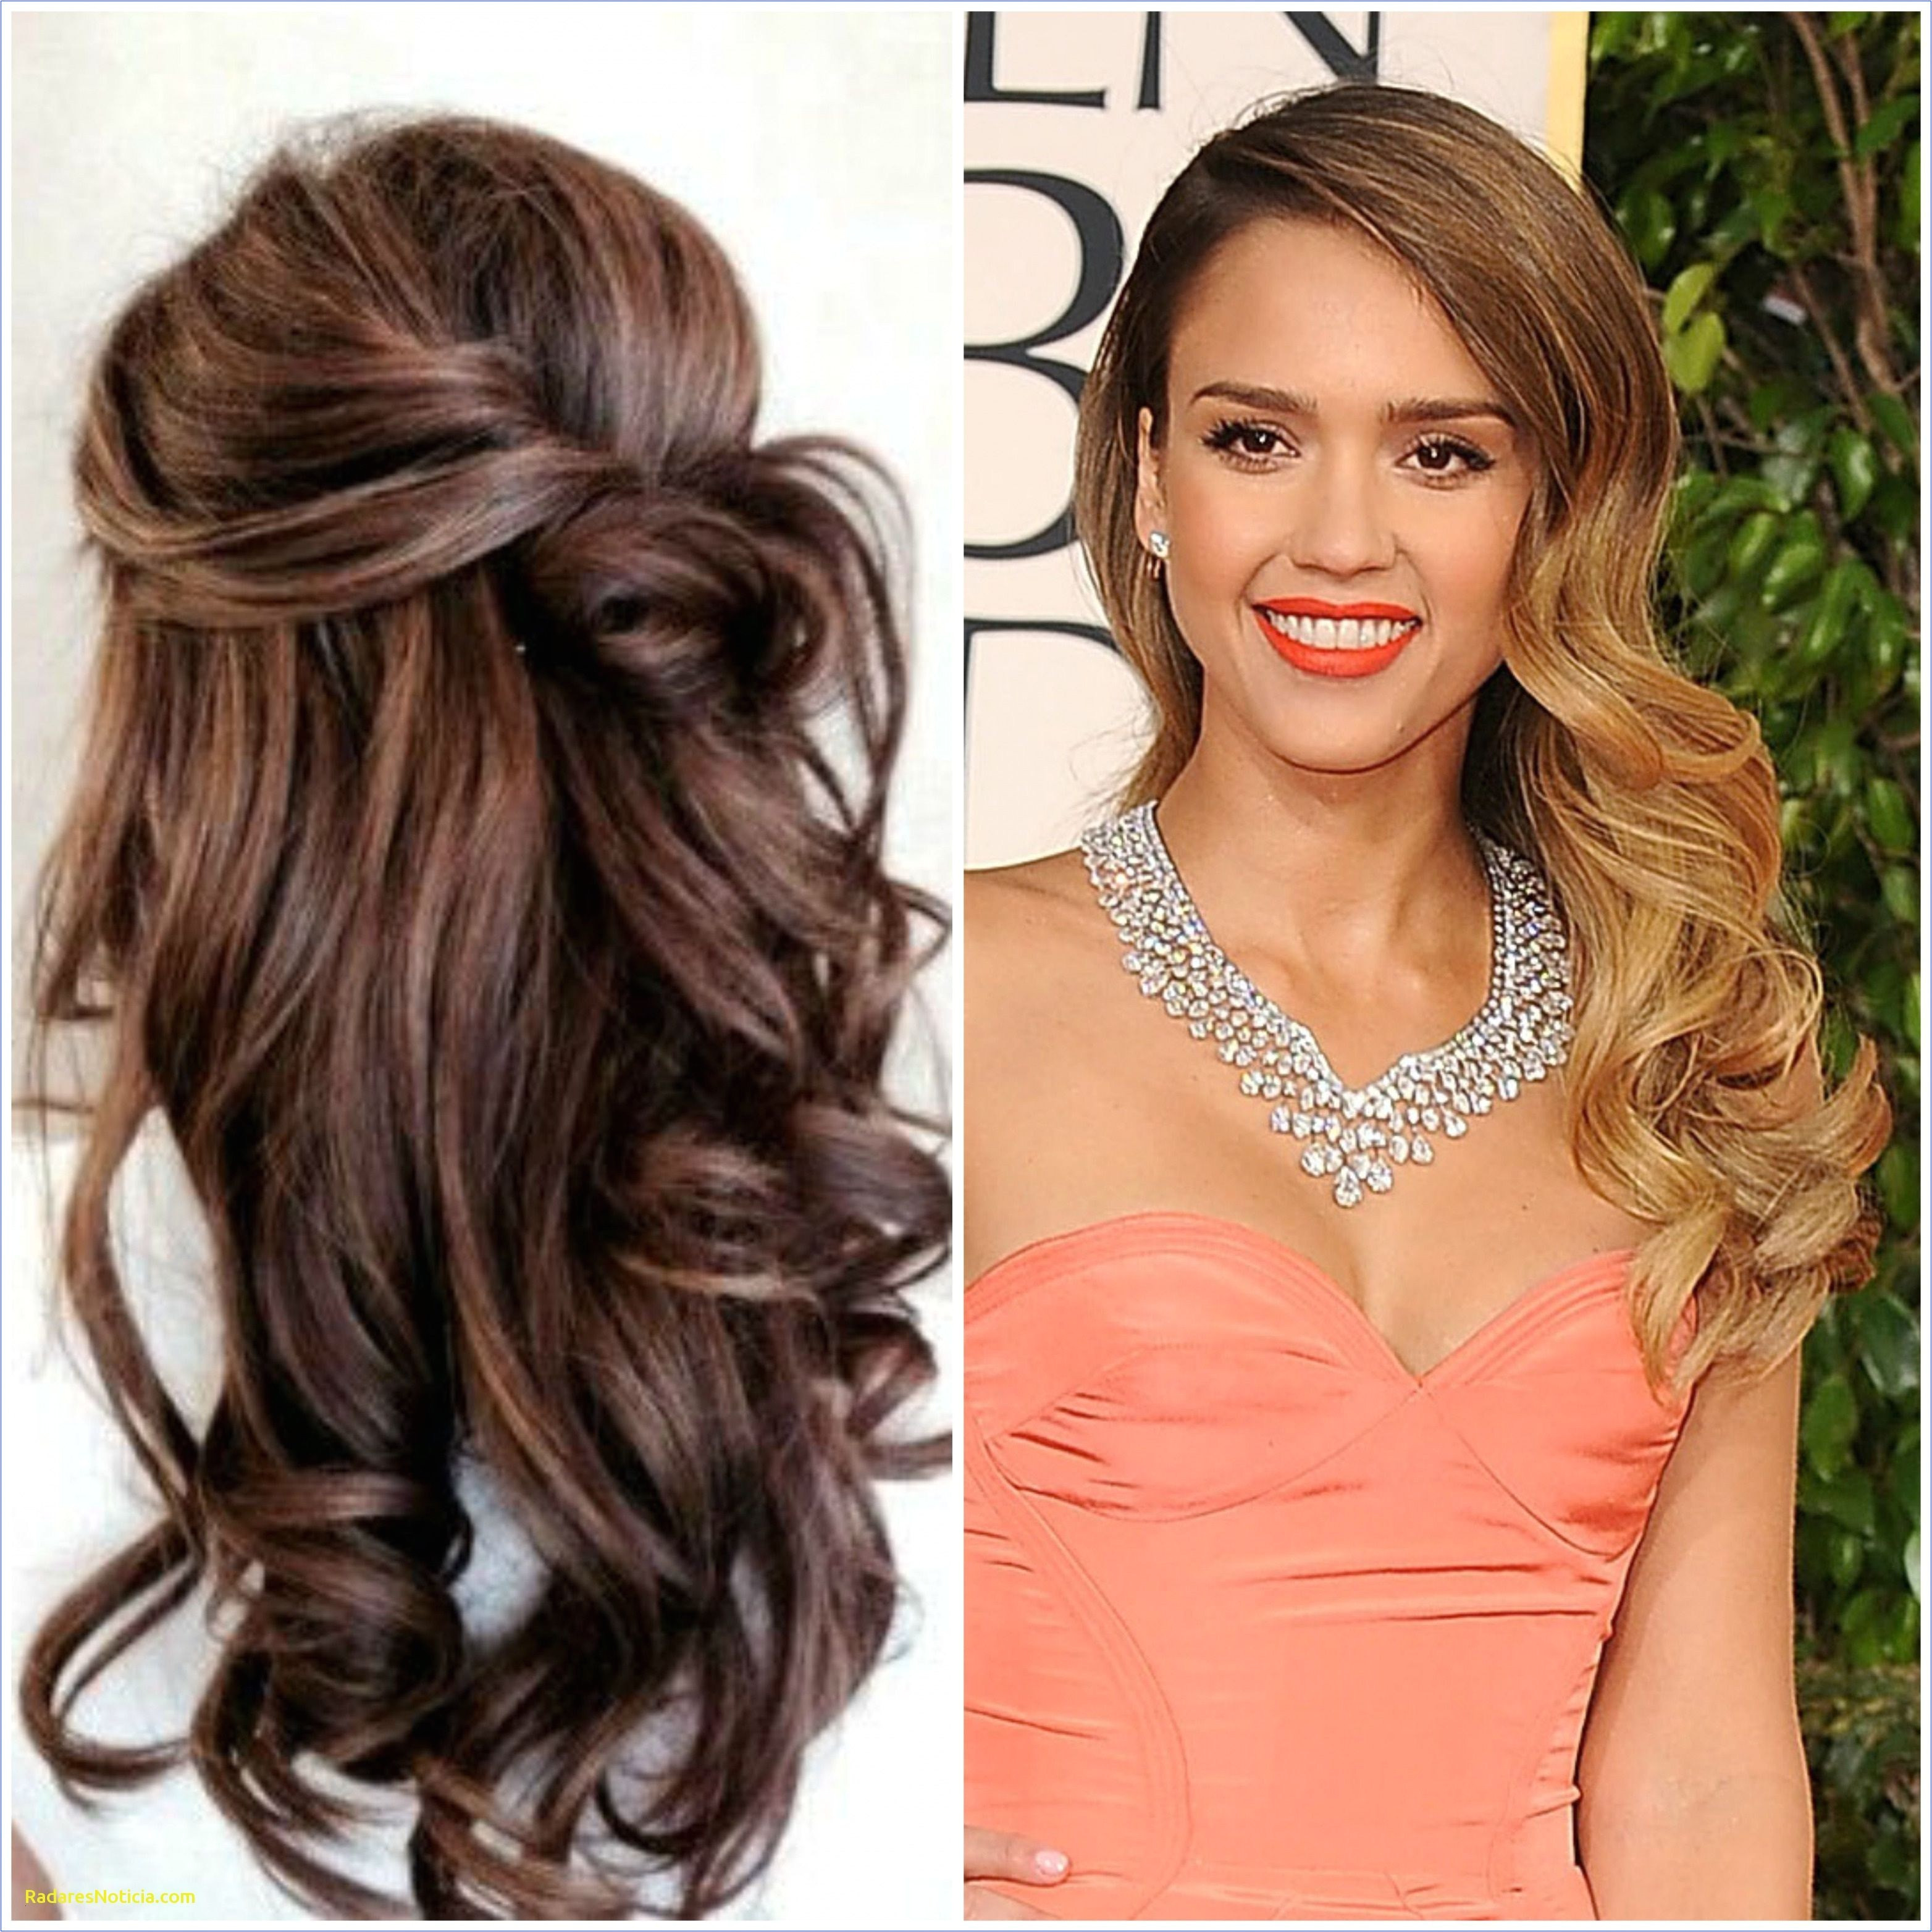 Long Wedding Hairstyles Best Inspirational Hairstyles for Long Hair 2015 Luxury I Pinimg 1200x 0d